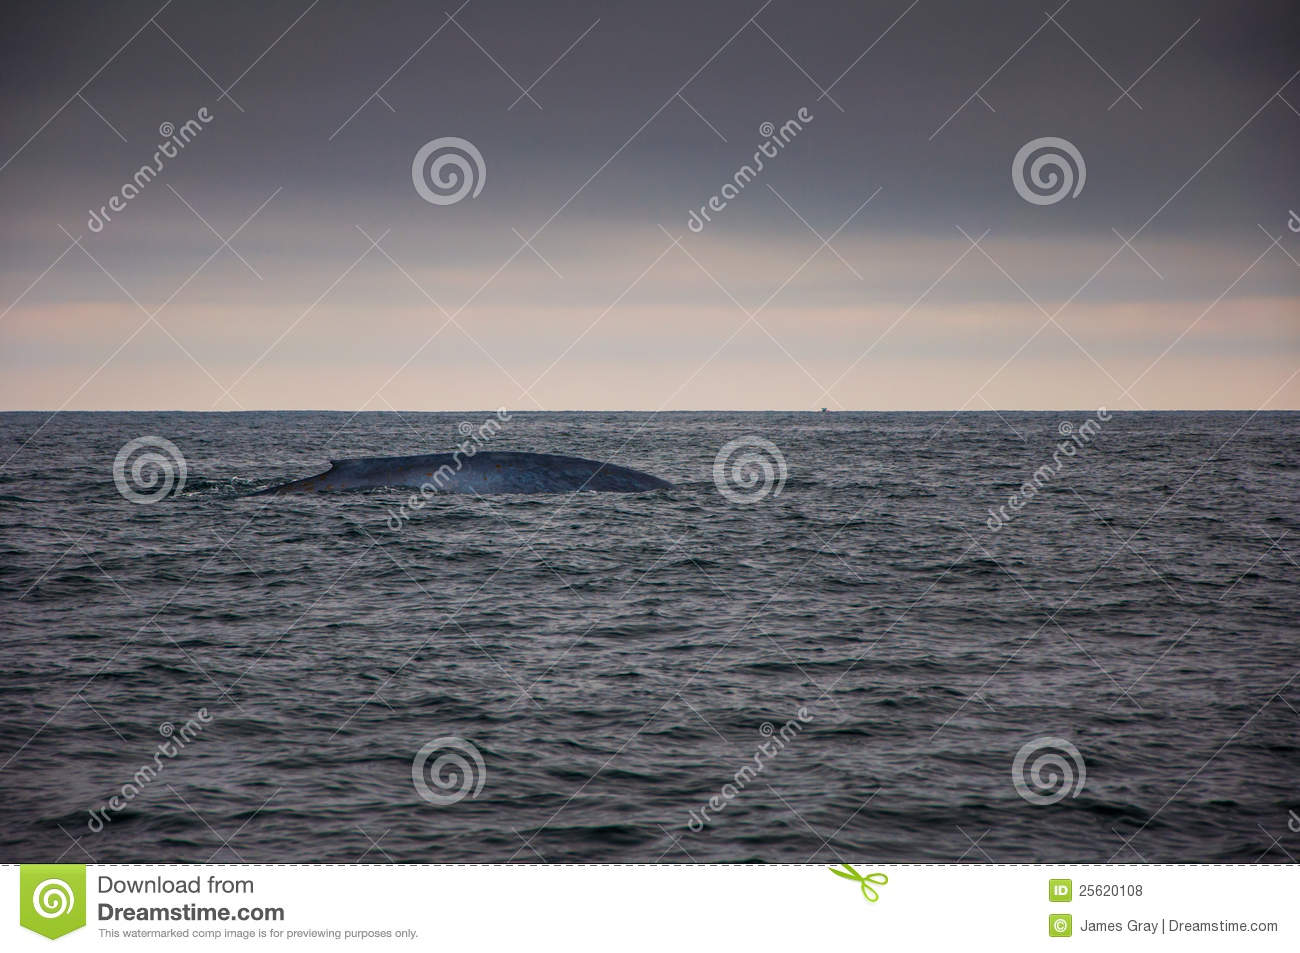 Blue whale in sea